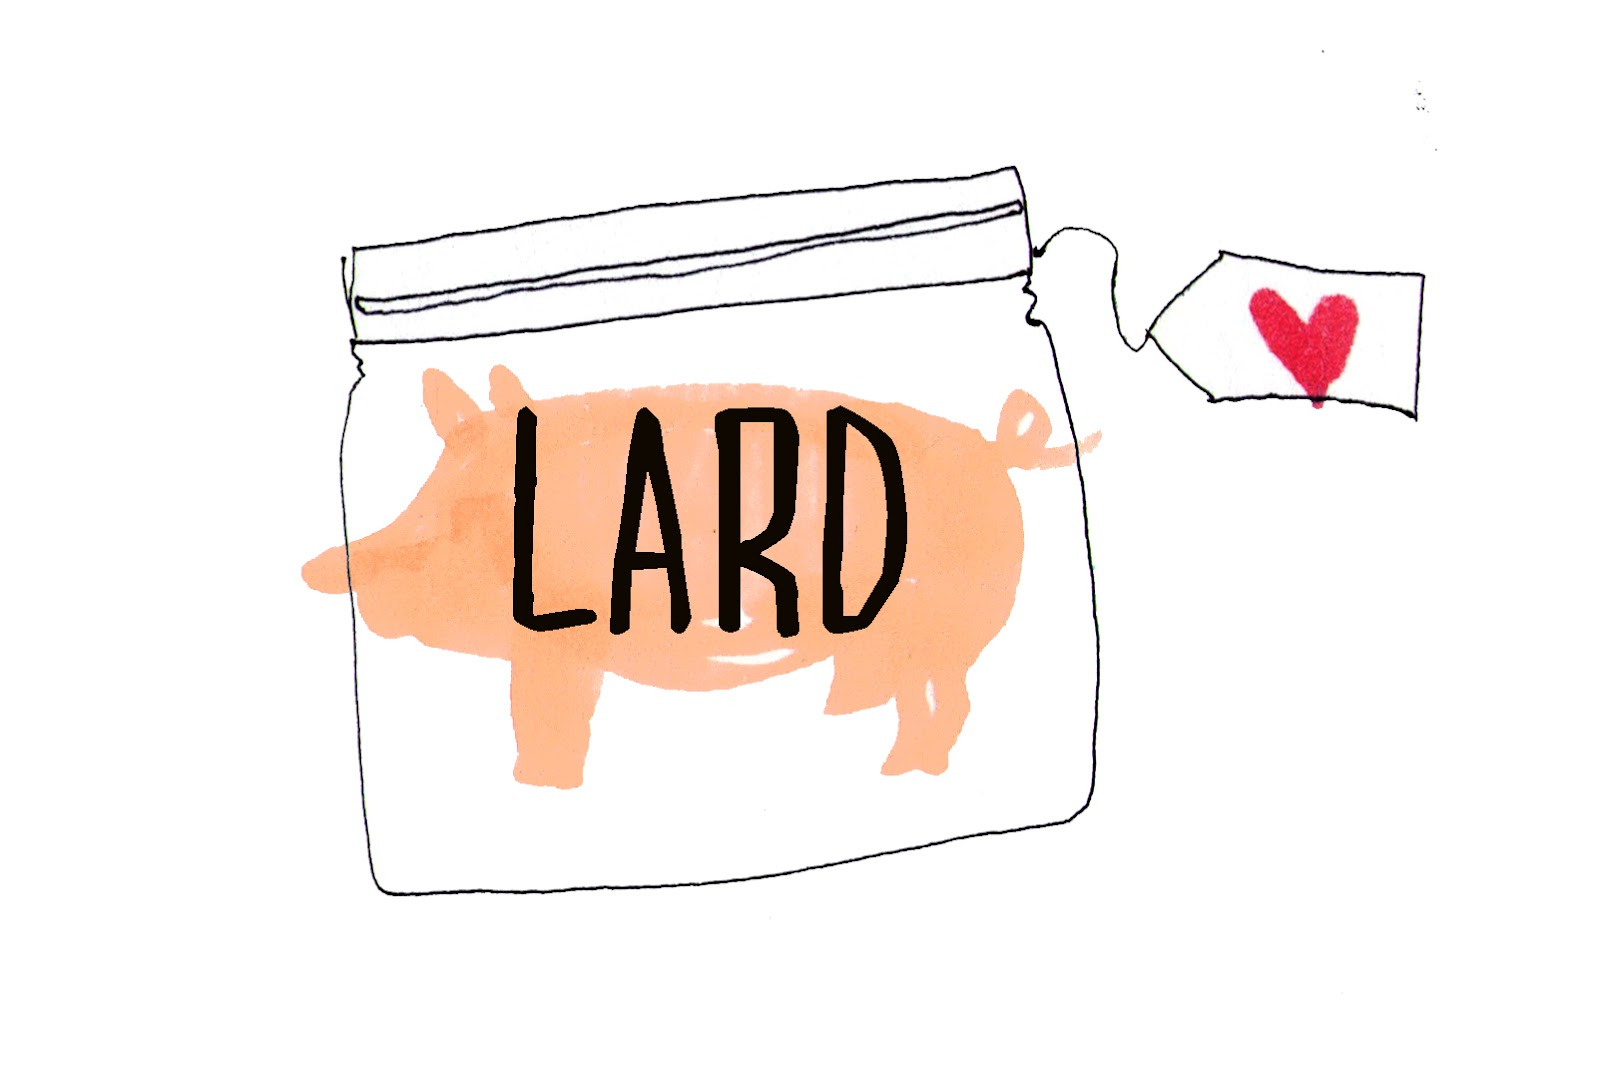 Mummy, I can cook!: For the love of lard.